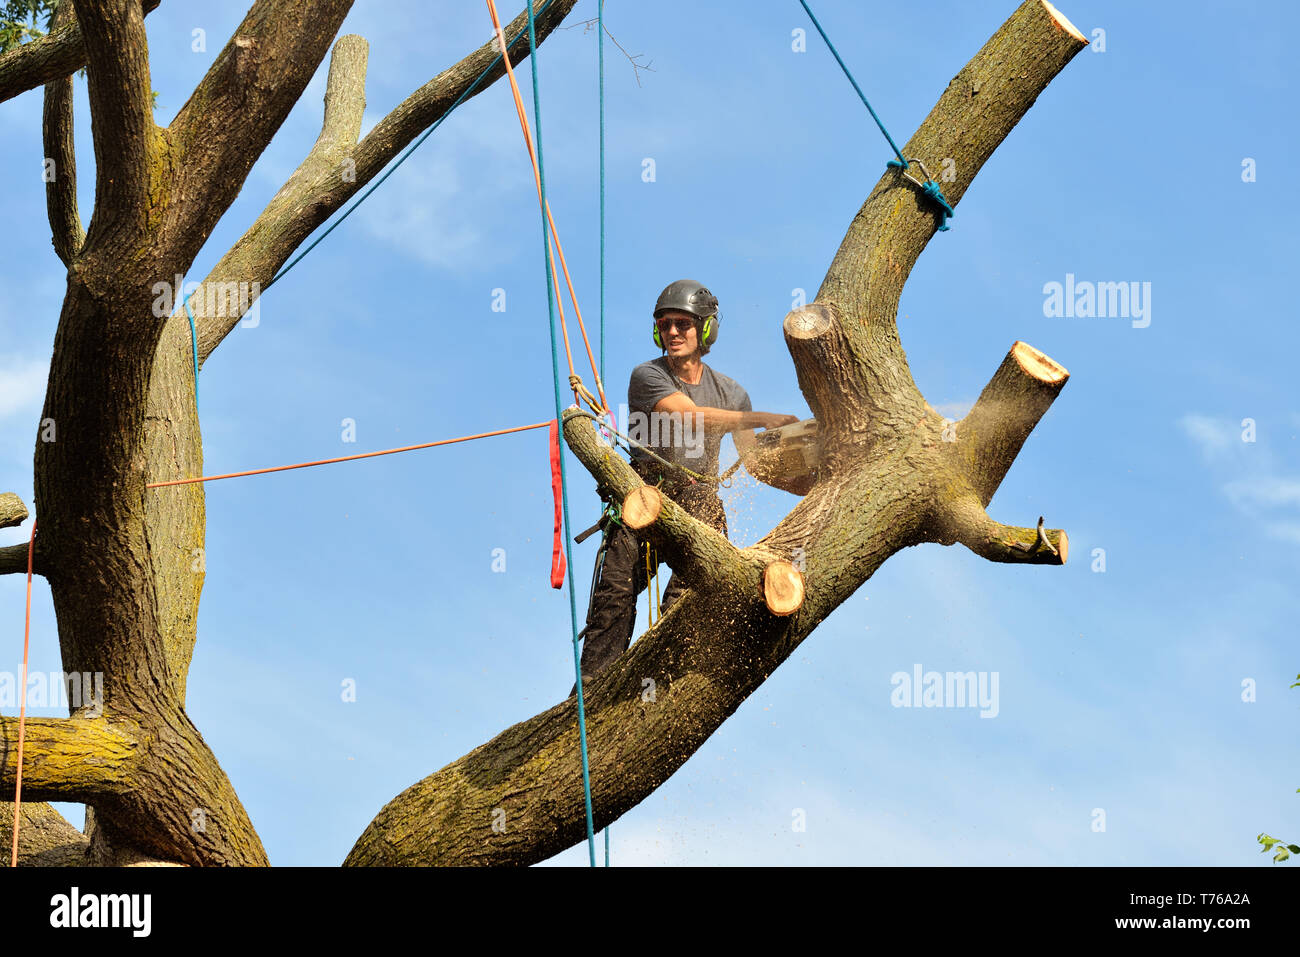 Professional arborist climbing and dismantling tree with chainsaw, ropes and safety gear. - Stock Image